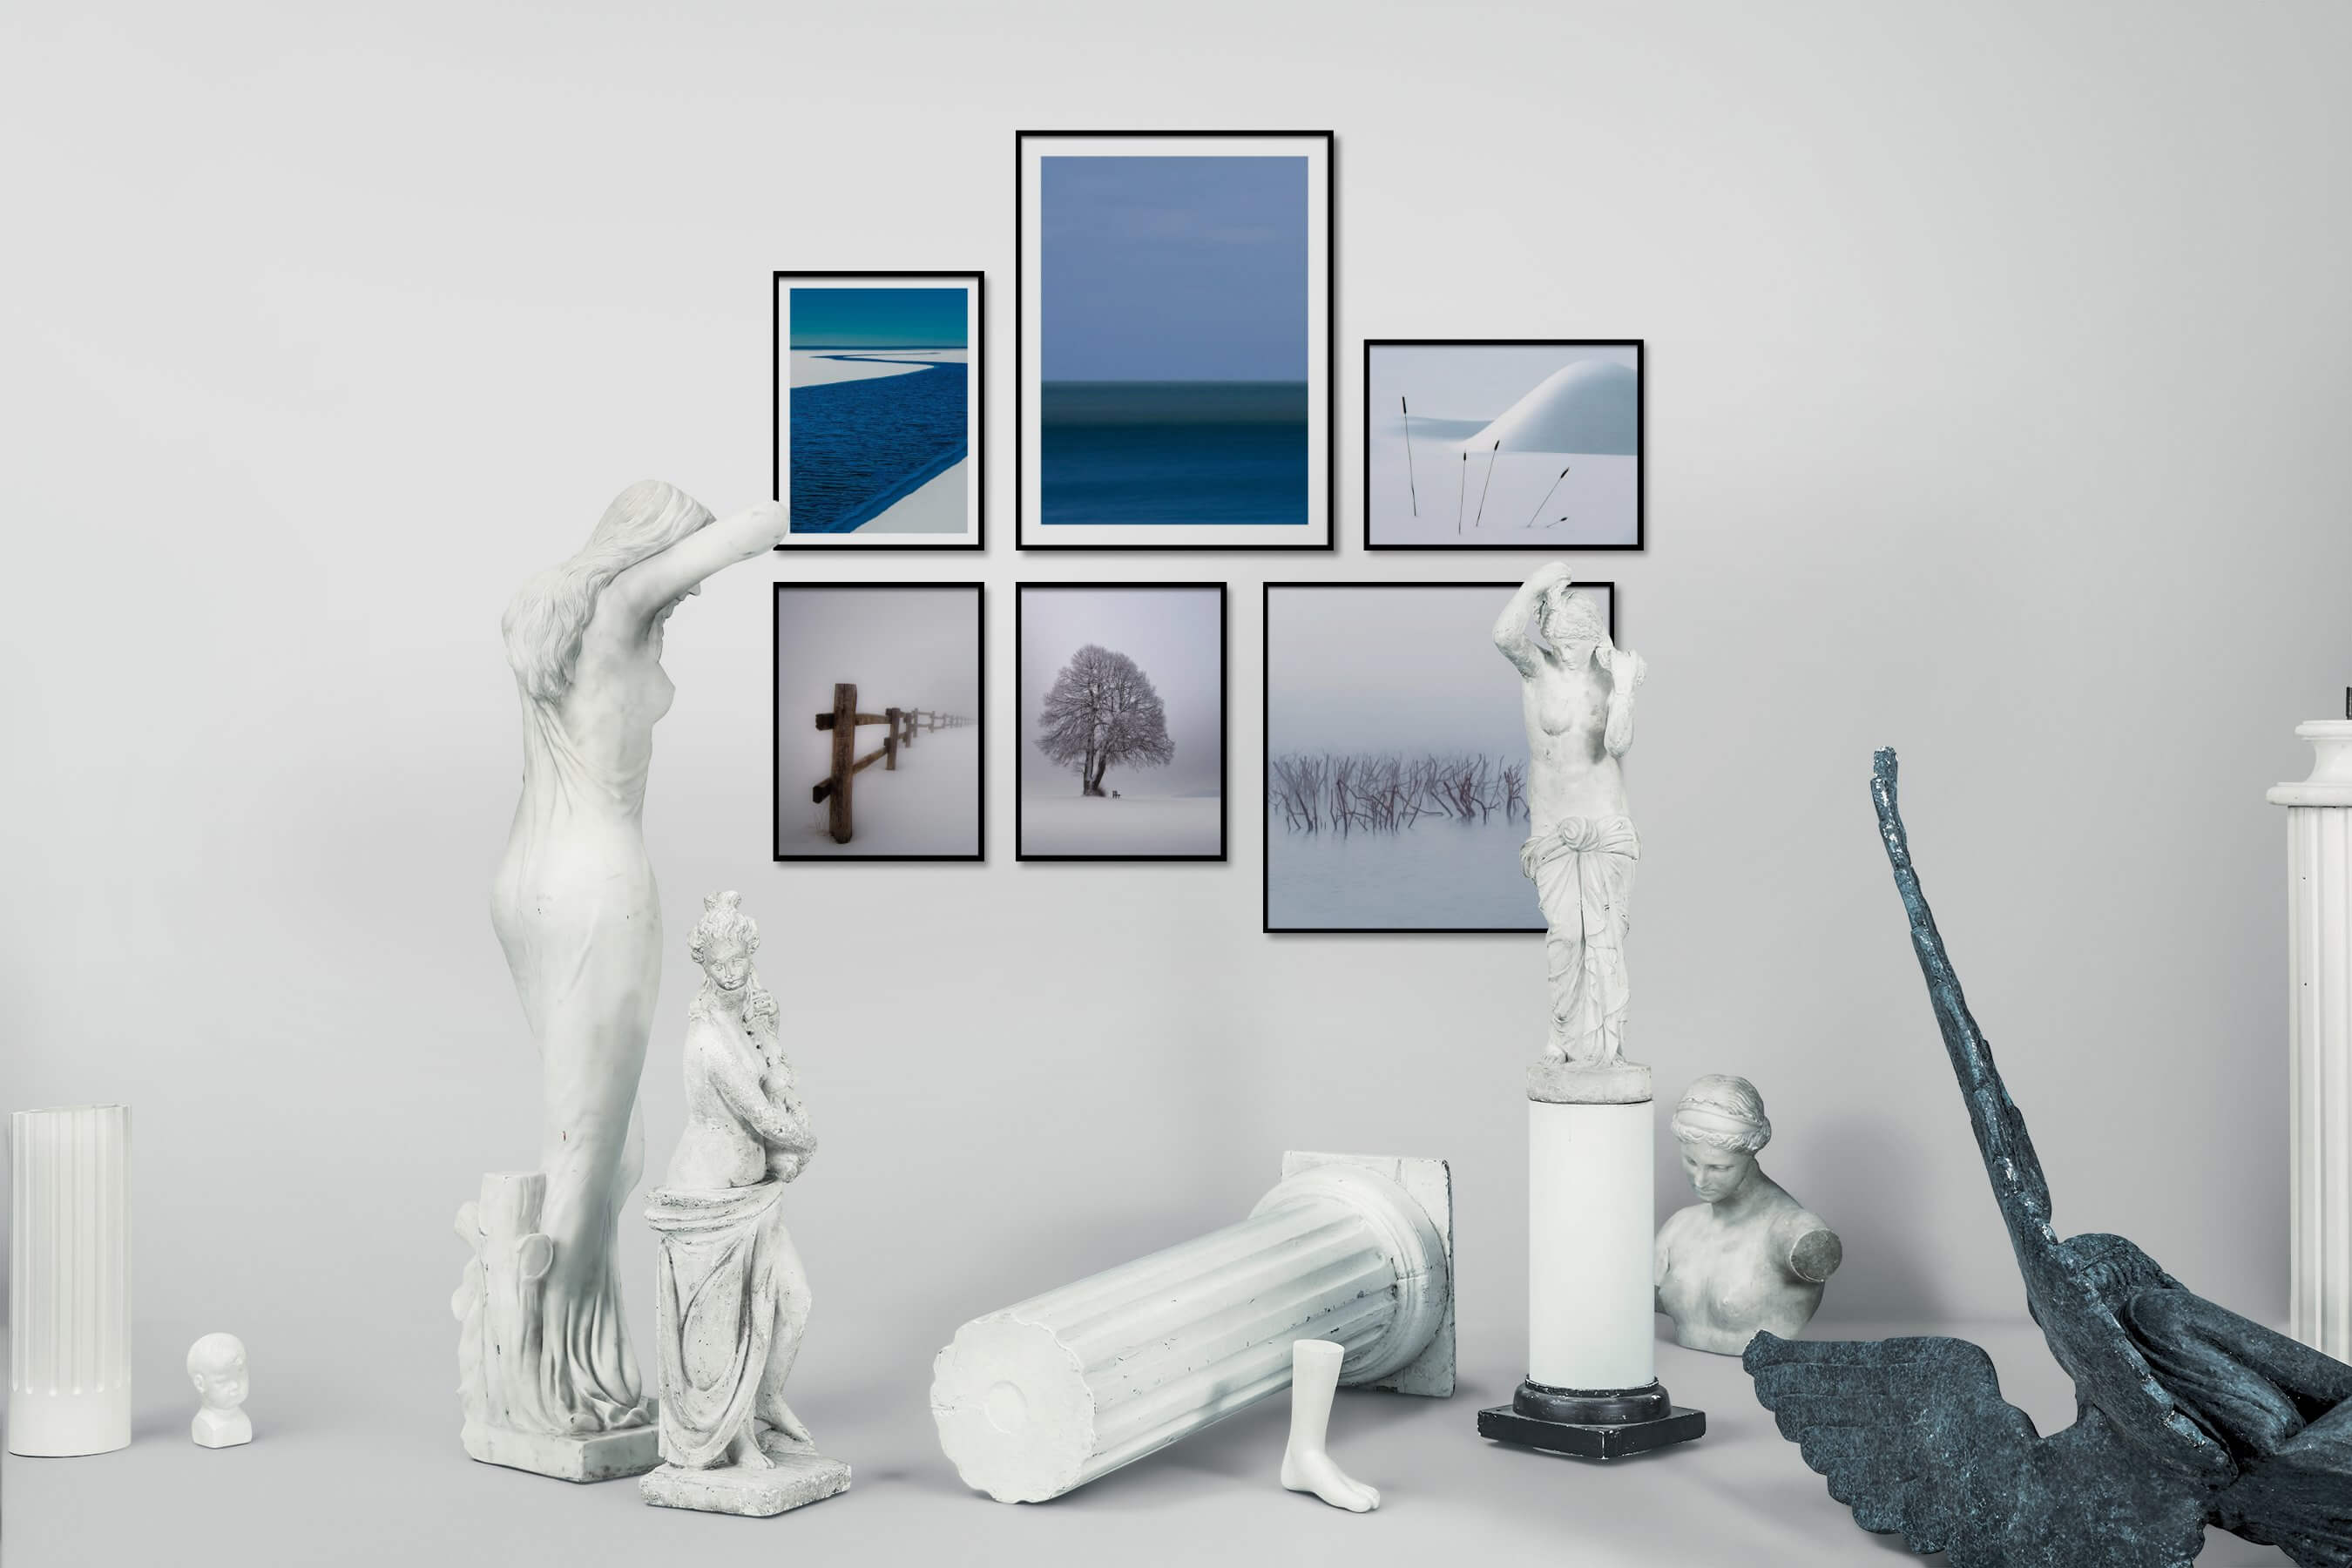 Gallery wall idea with six framed pictures arranged on a wall depicting For the Minimalist, Beach & Water, Mindfulness, Country Life, and Nature